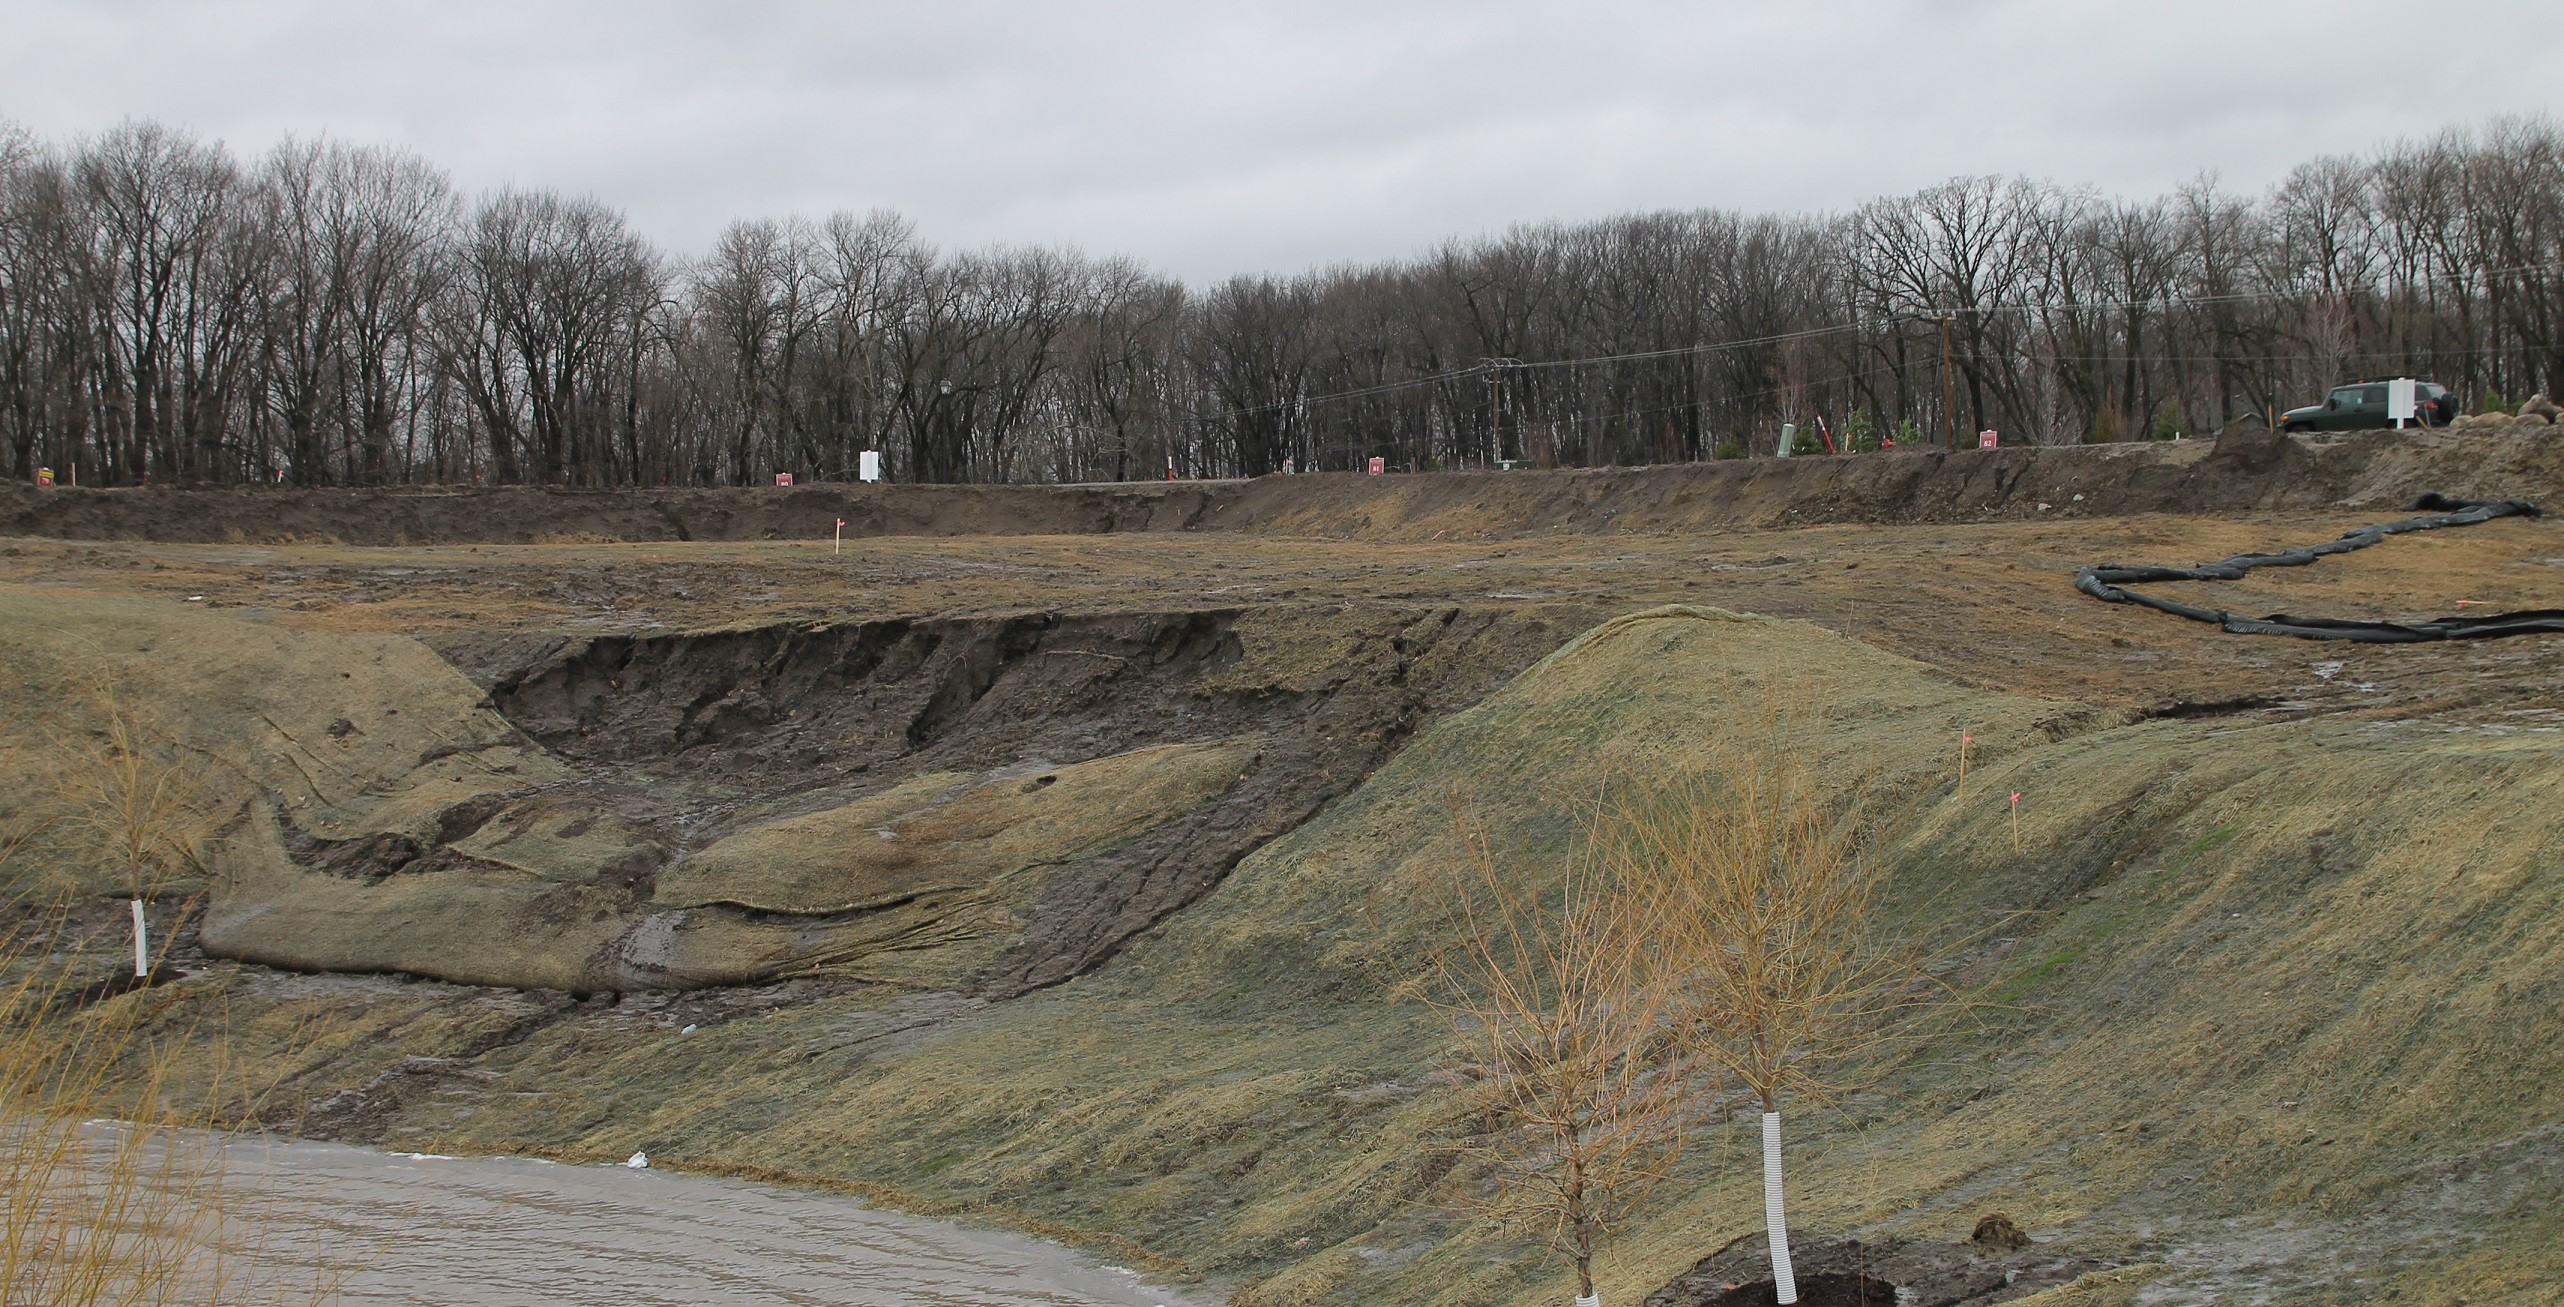 Slope Stability, Part 1: I See a Problem